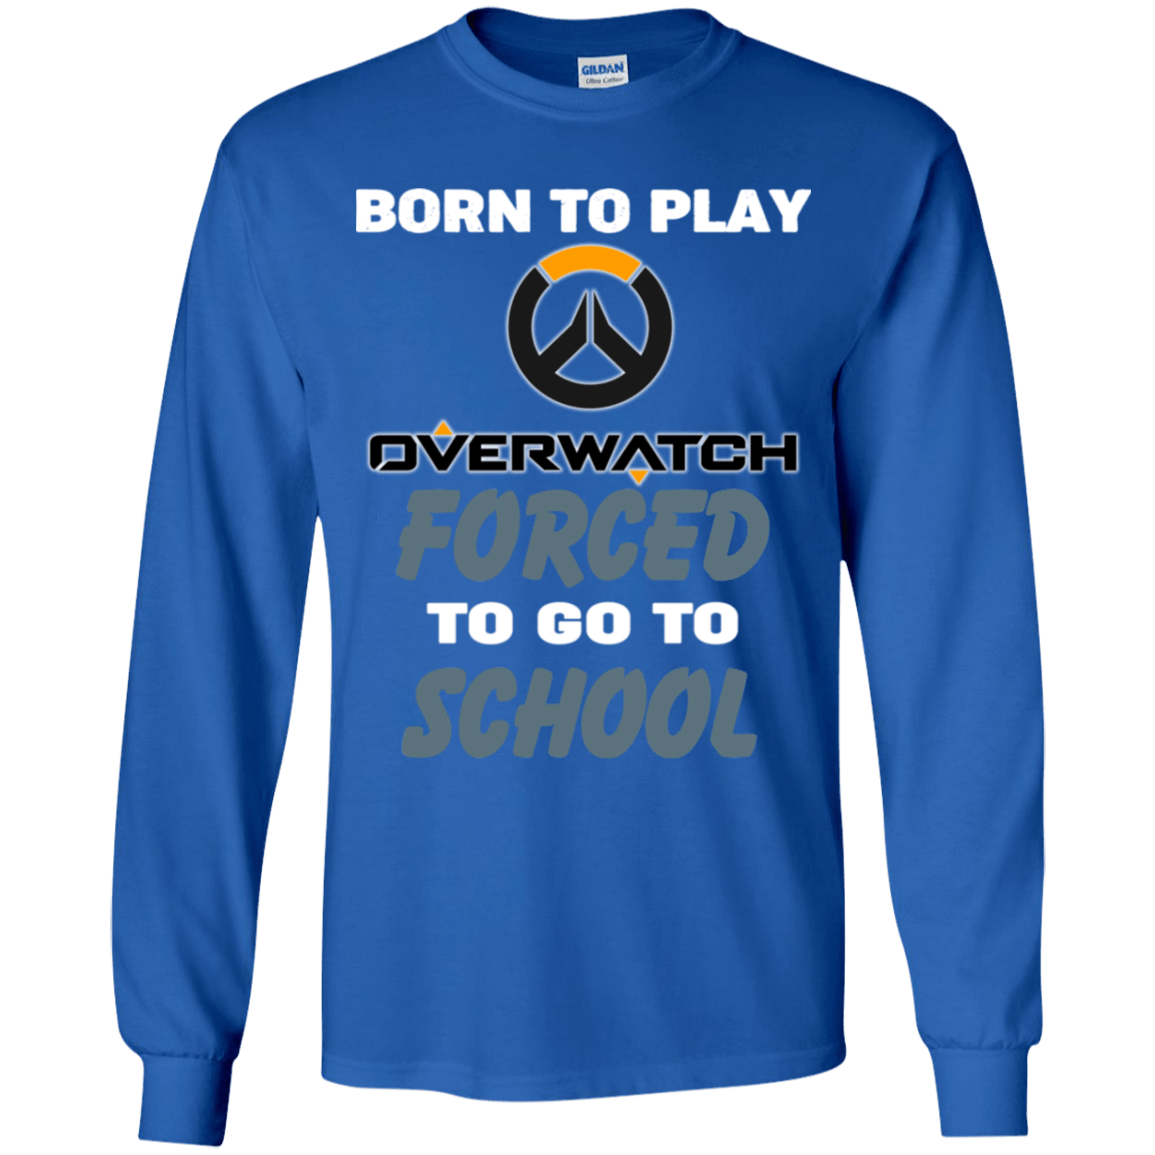 Born To Play Overwatch Forced To Go To School 56-322-74209659-1231 - Tee Ript